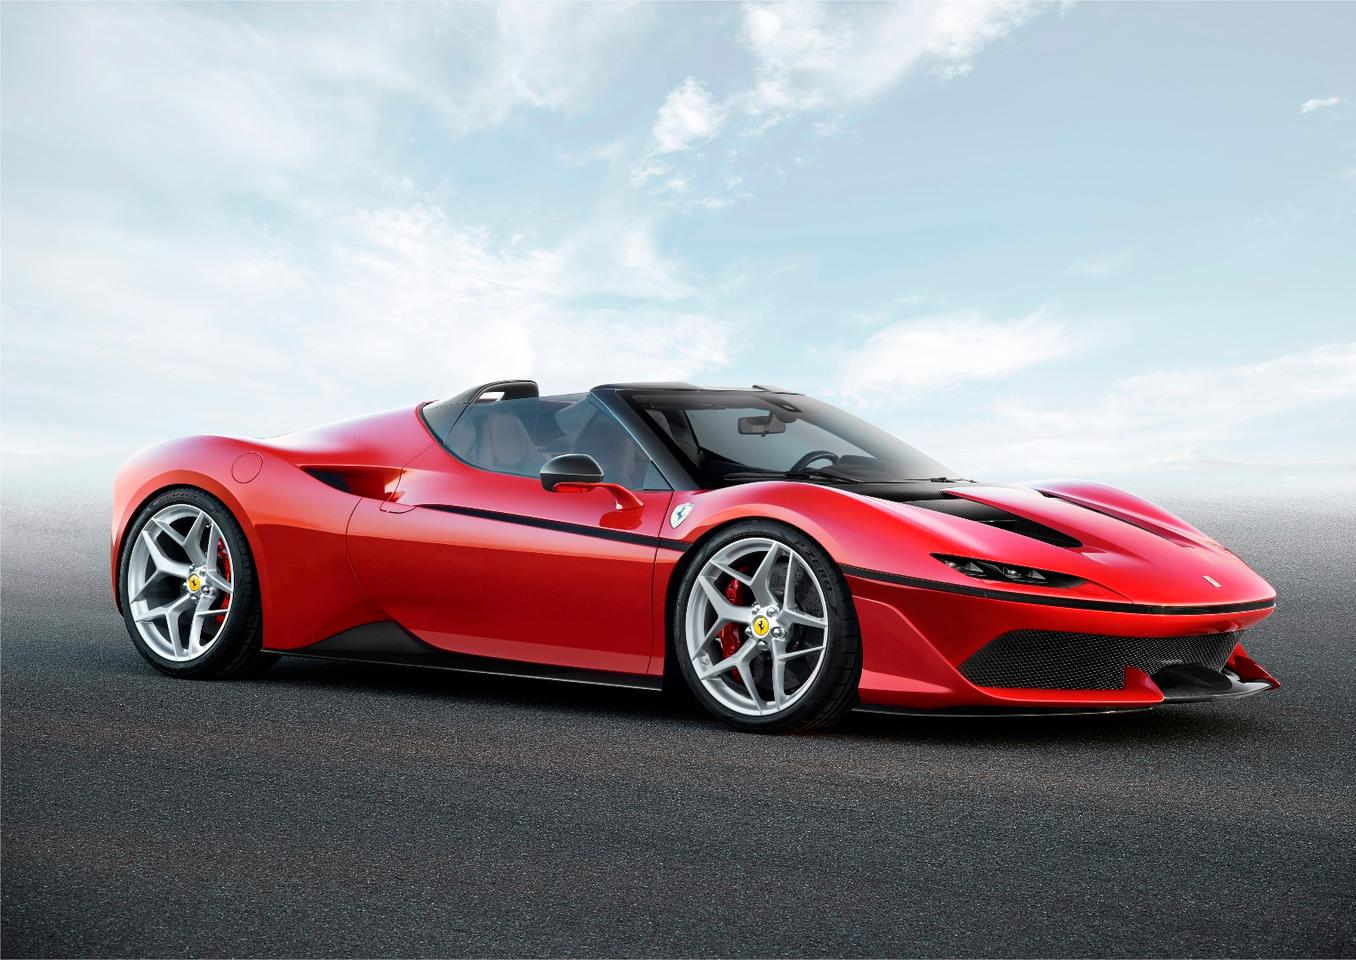 The Ferrari J50 was launched in Tokyo